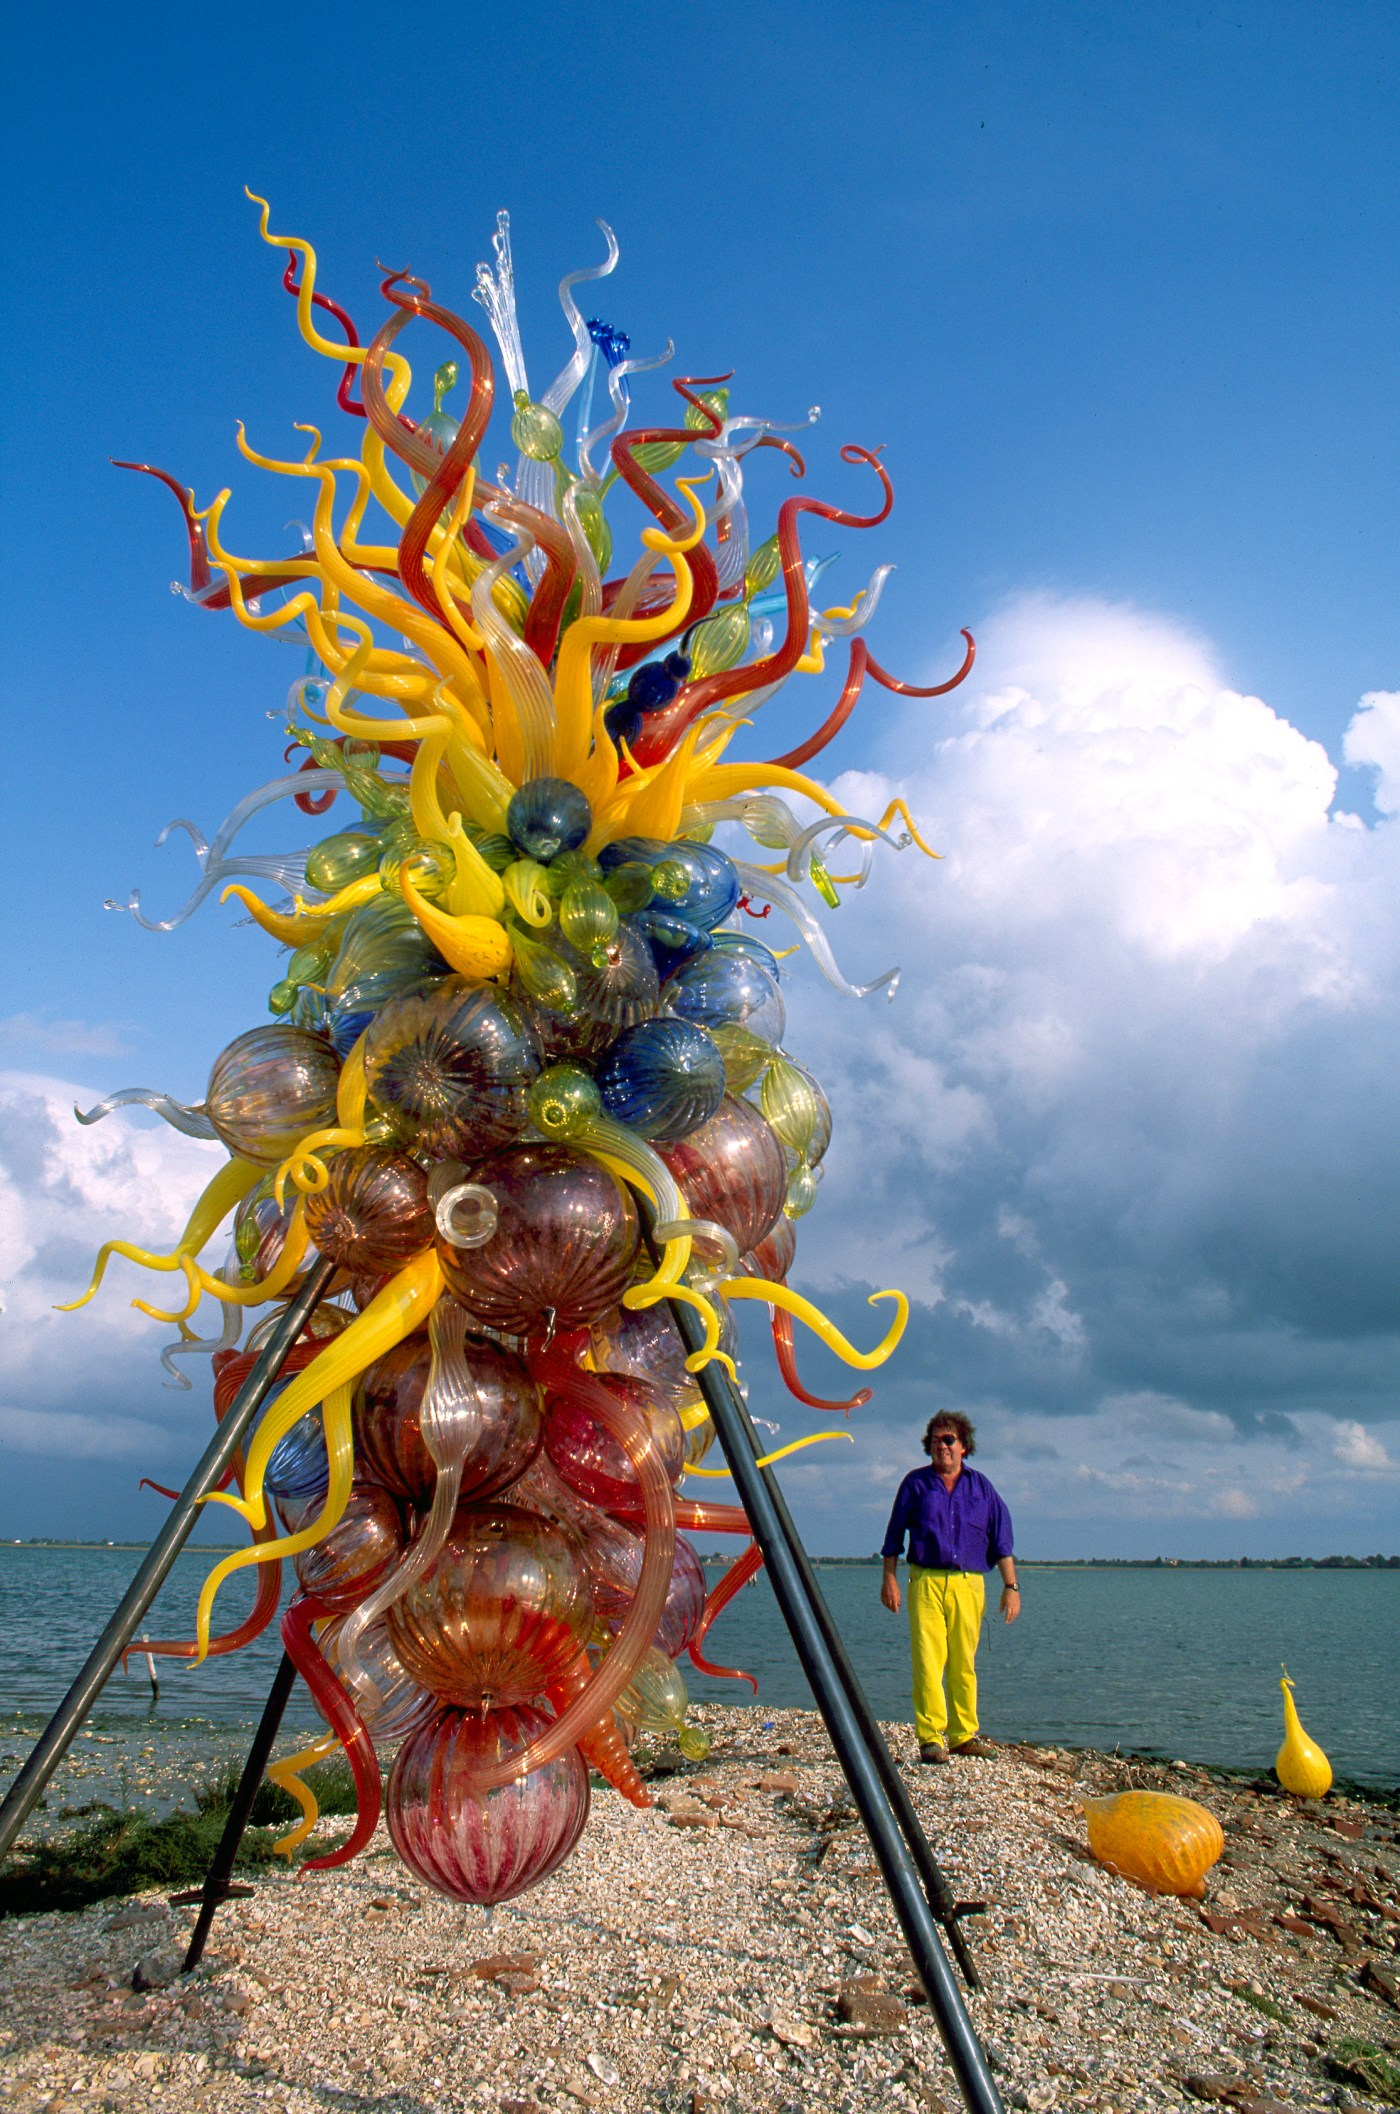 Dale Chihuly with Isola di San Giacomo in Palude Chandelier Venice, 奇胡利與聖雅各伯島吊燈,1996 © Chihuly Studio